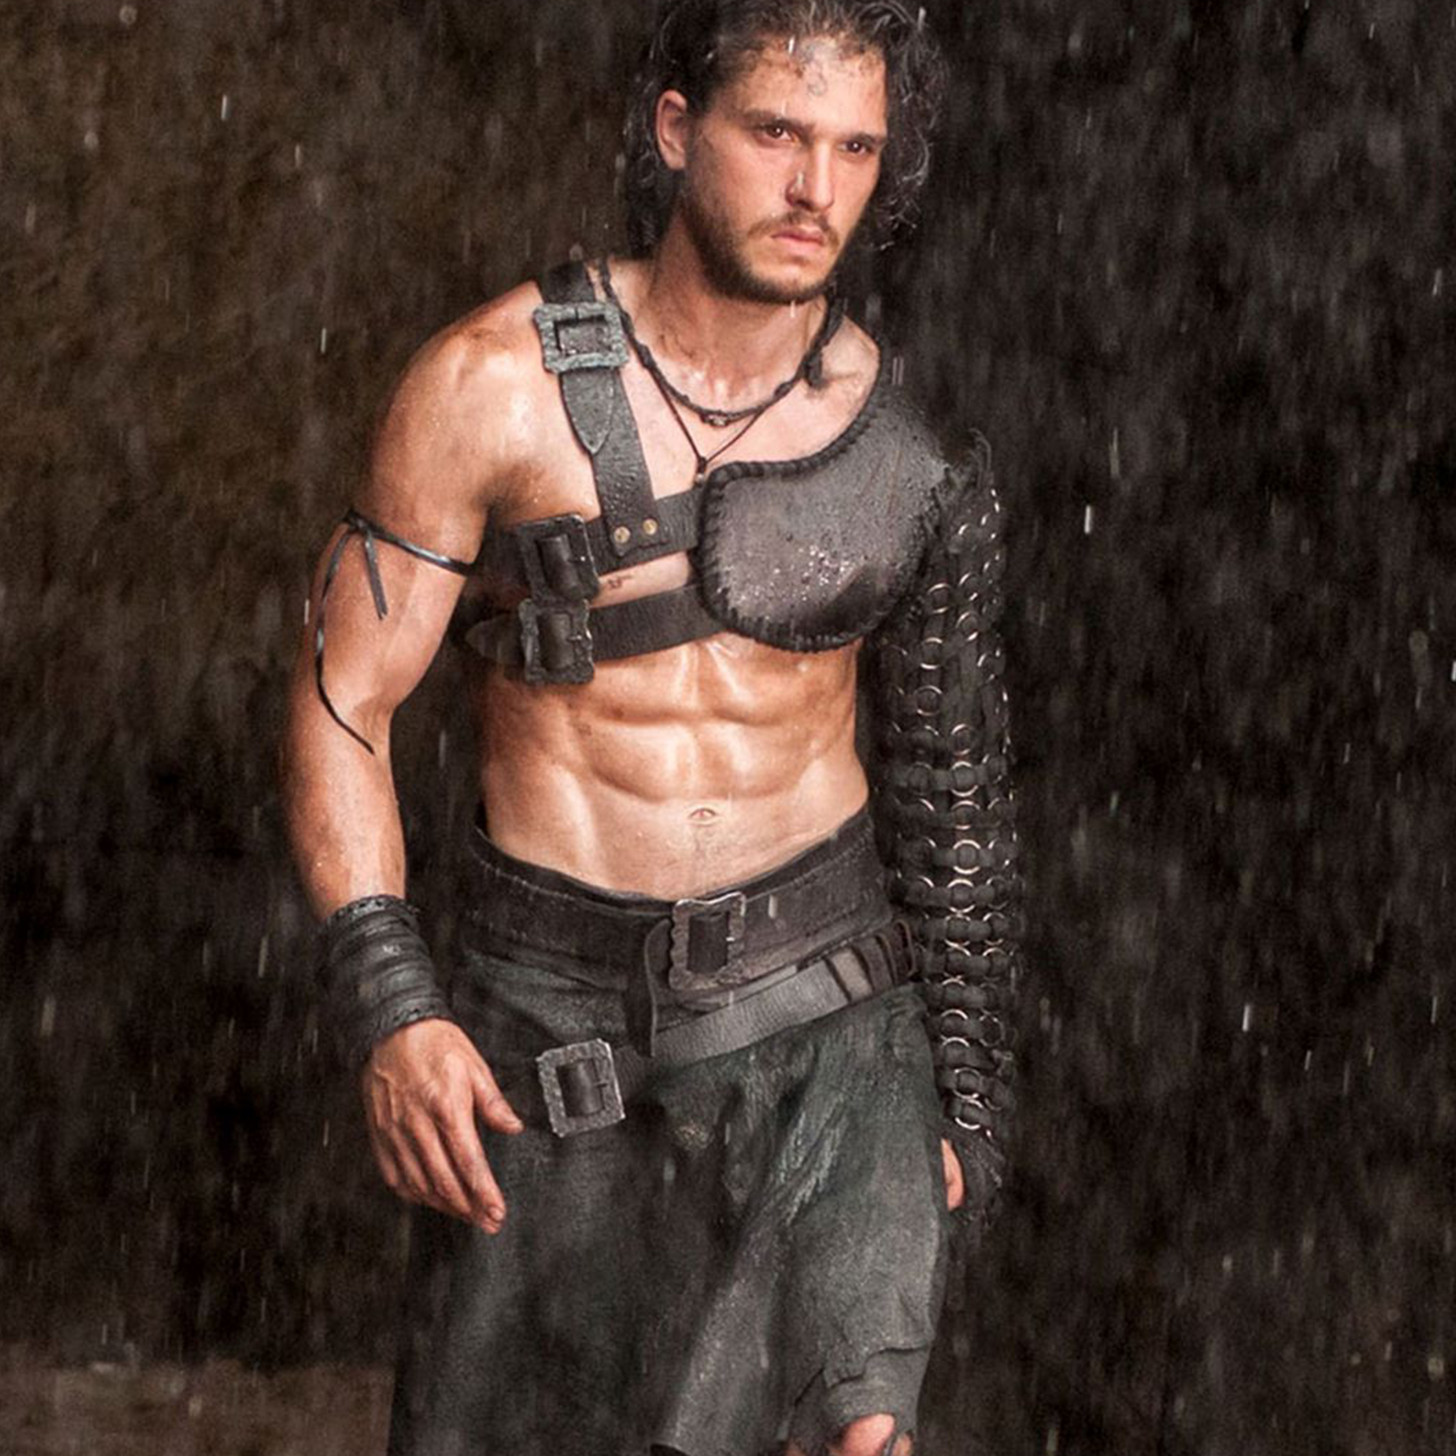 Sexiest Episode Of Game Of Thrones photo 28